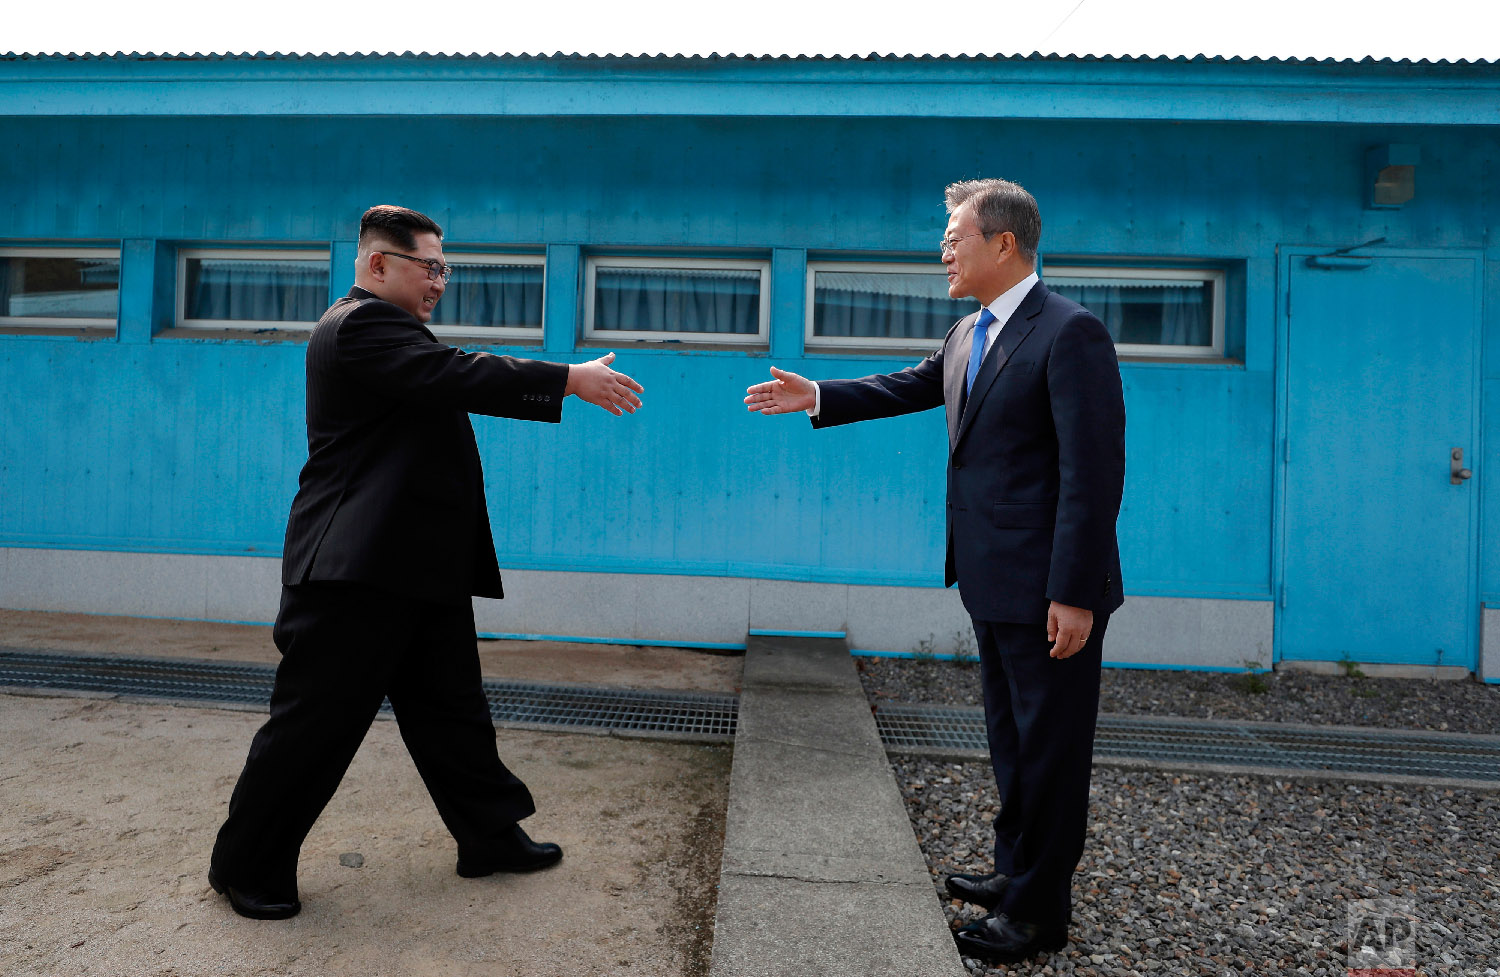 North Korean leader Kim Jong Un, left, prepares to shake hands with South Korean President Moon Jae-in over the military demarcation line at the border village of Panmunjom in Demilitarized Zone on April 27, 2018. (Korea Summit Press Pool via AP)